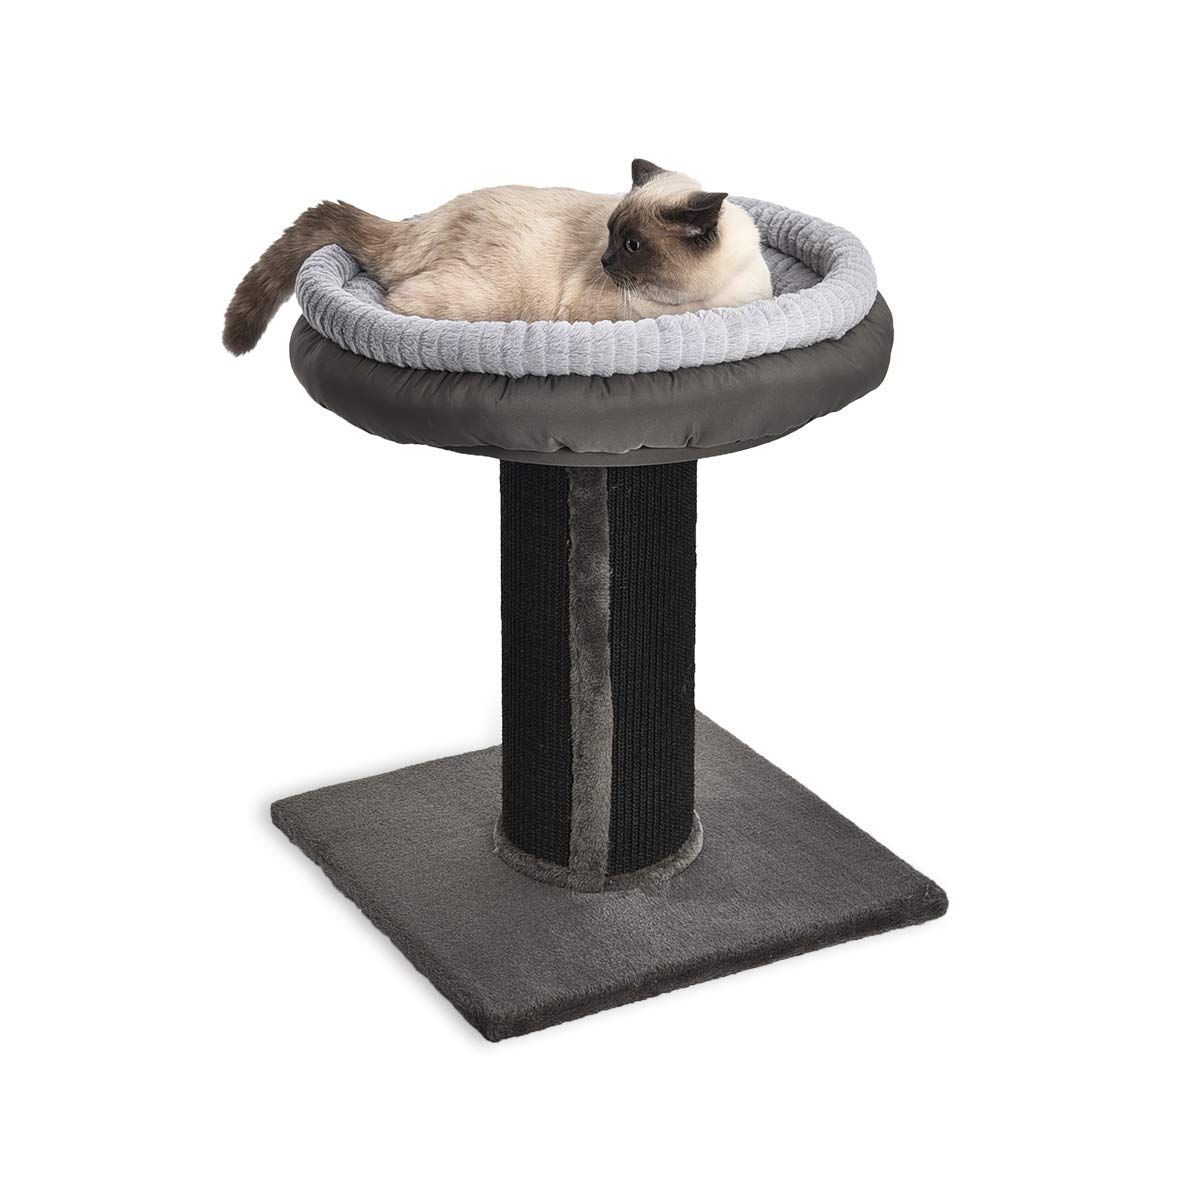 AmazonBasics Extra Large Cat Scratching Post Tree Tower With Bed - 19 x 19 x 26 Inches, Black by AmazonBasics